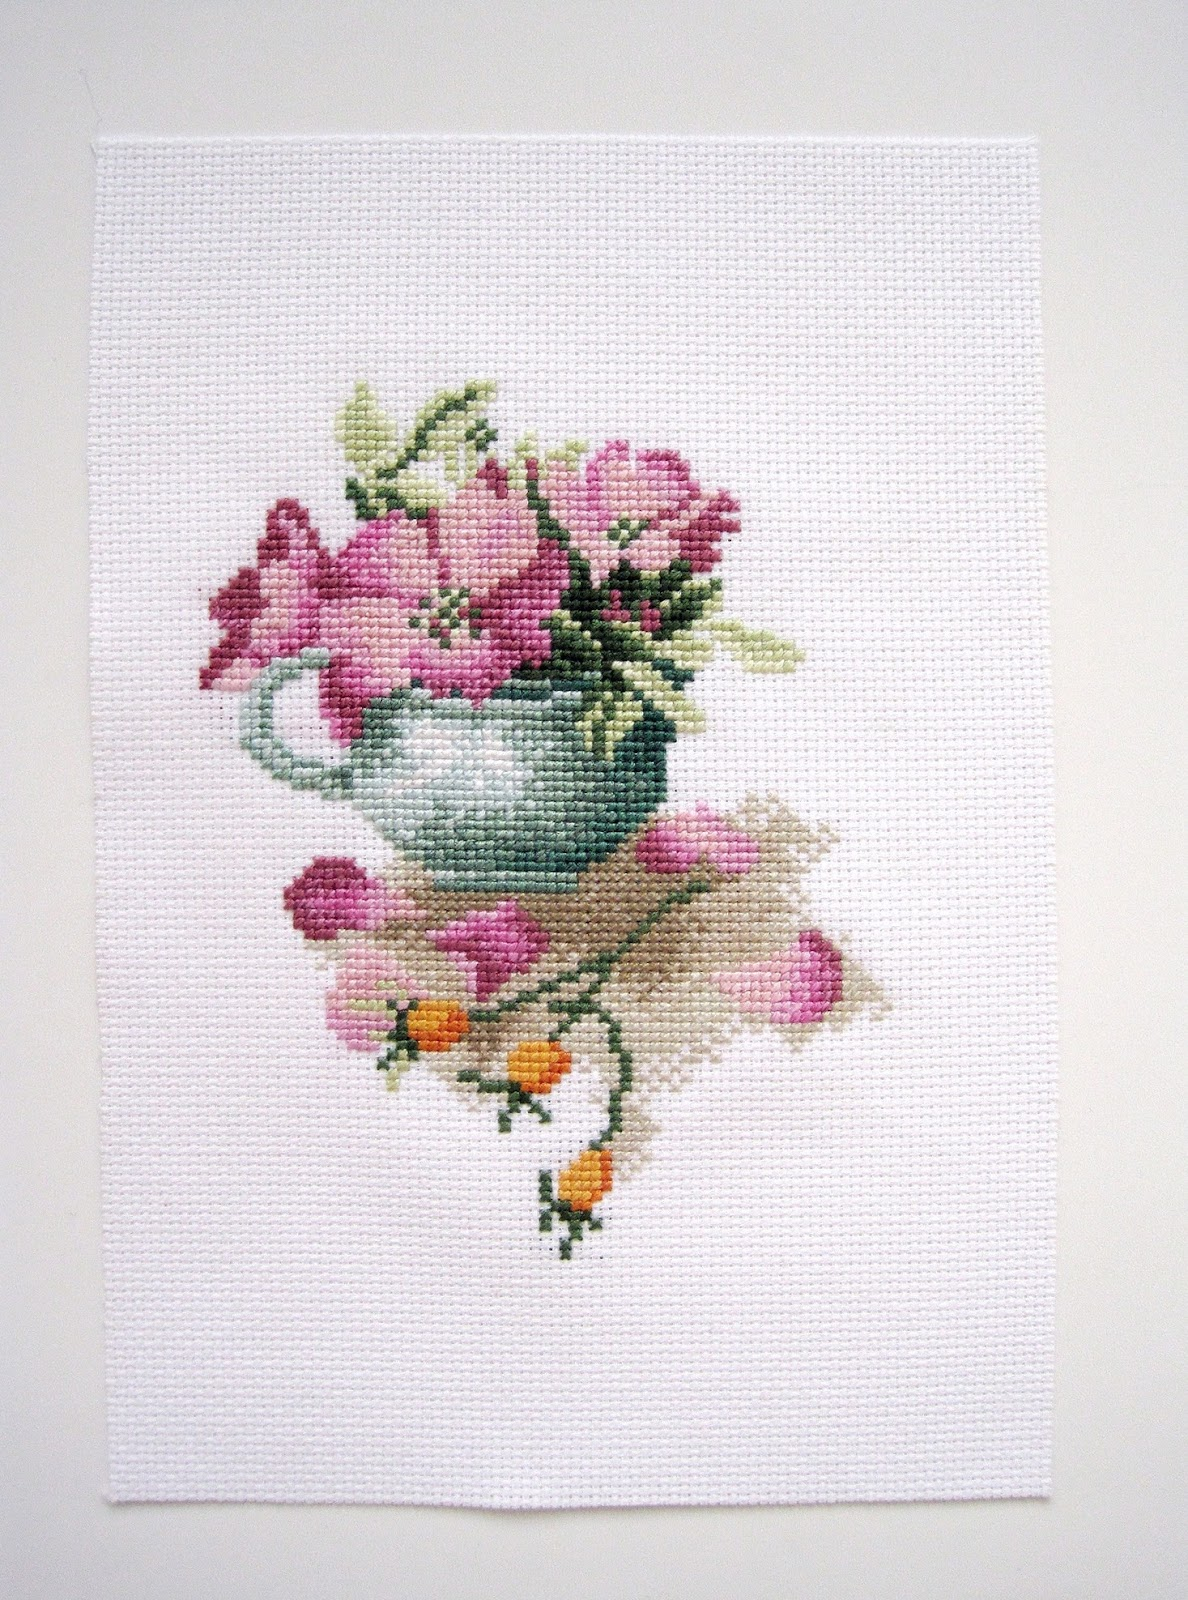 Rose hips in a bowl Lanarte cross stitch вышивка крестиком шиповник